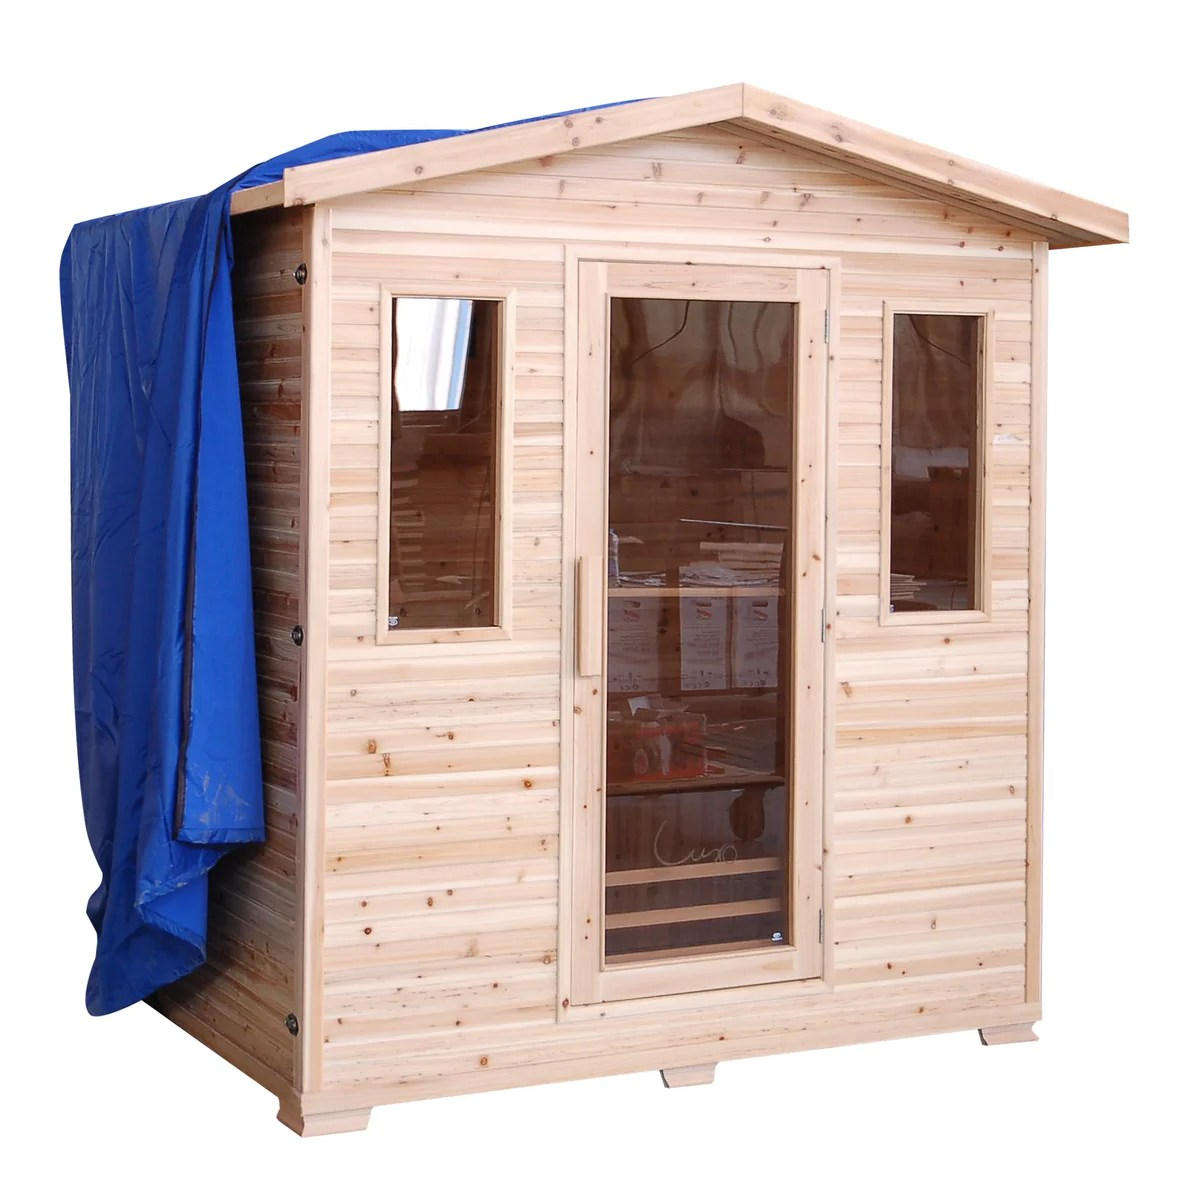 Sauna Outdoor Buy A Sunray Cayenne 4-person Outdoor Sauna - Free Shipping!